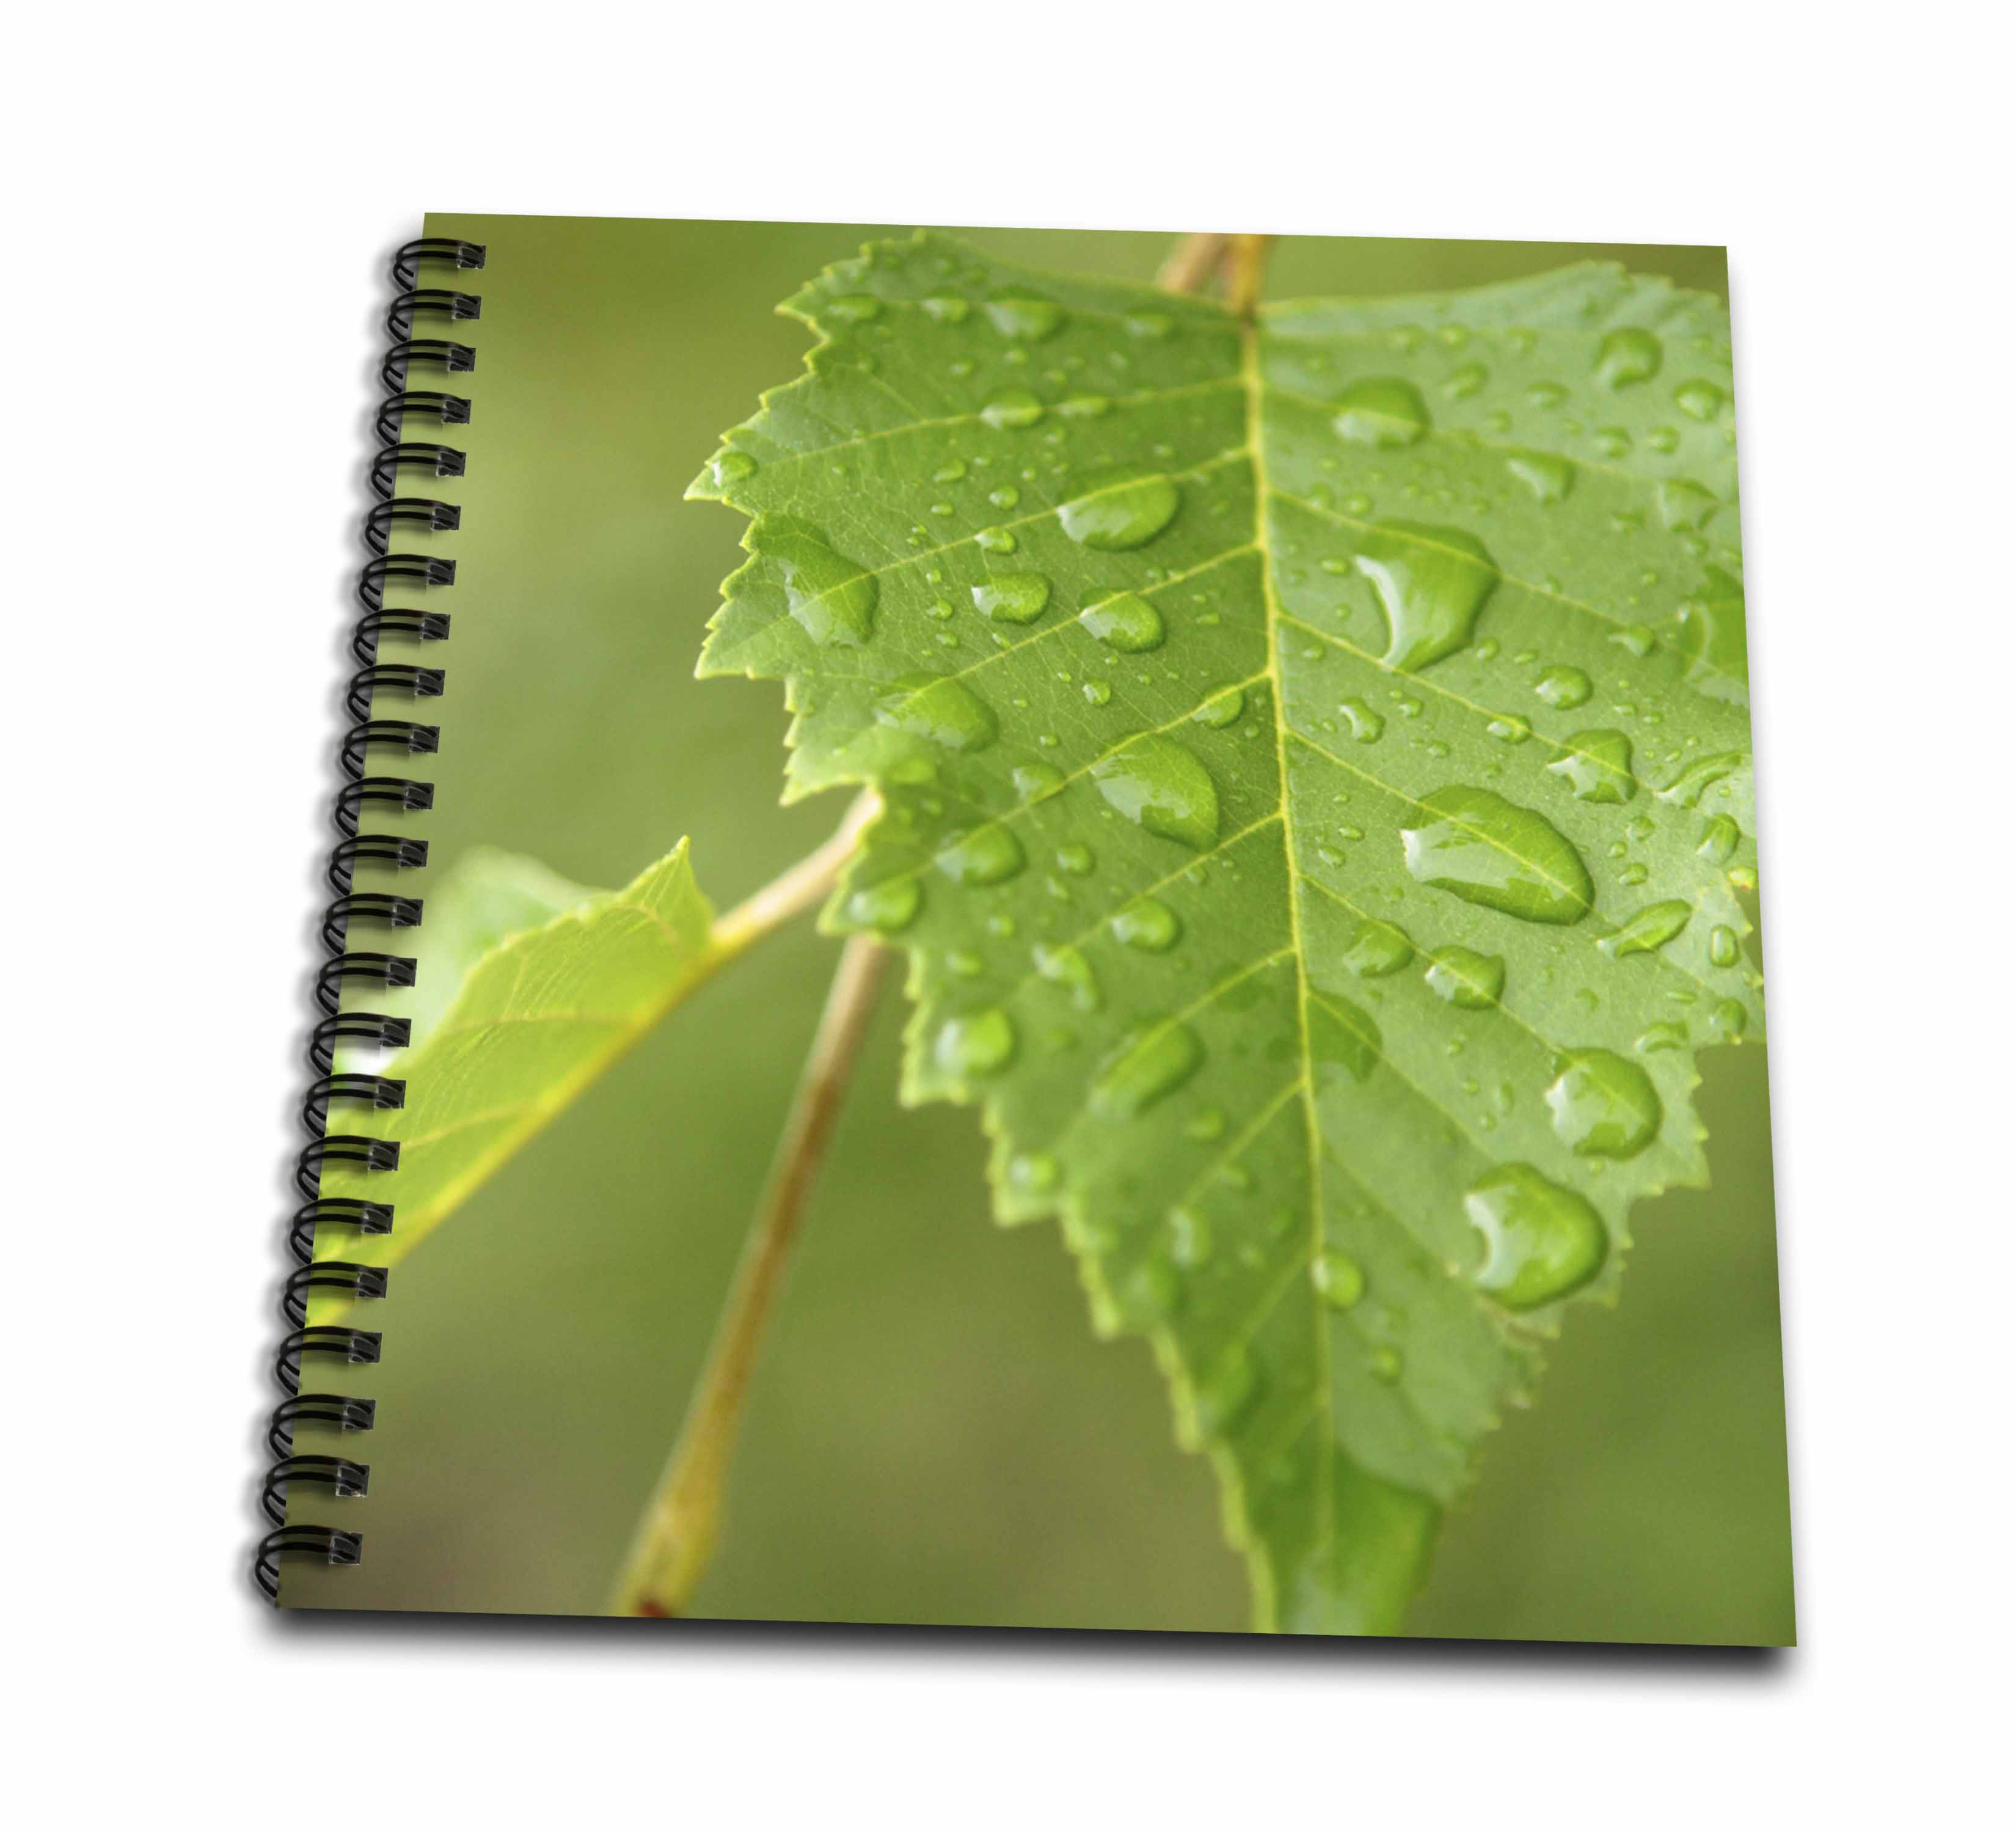 3dRose Plants Leaves Rain Green - Drawing Book, 8 by 8-inch